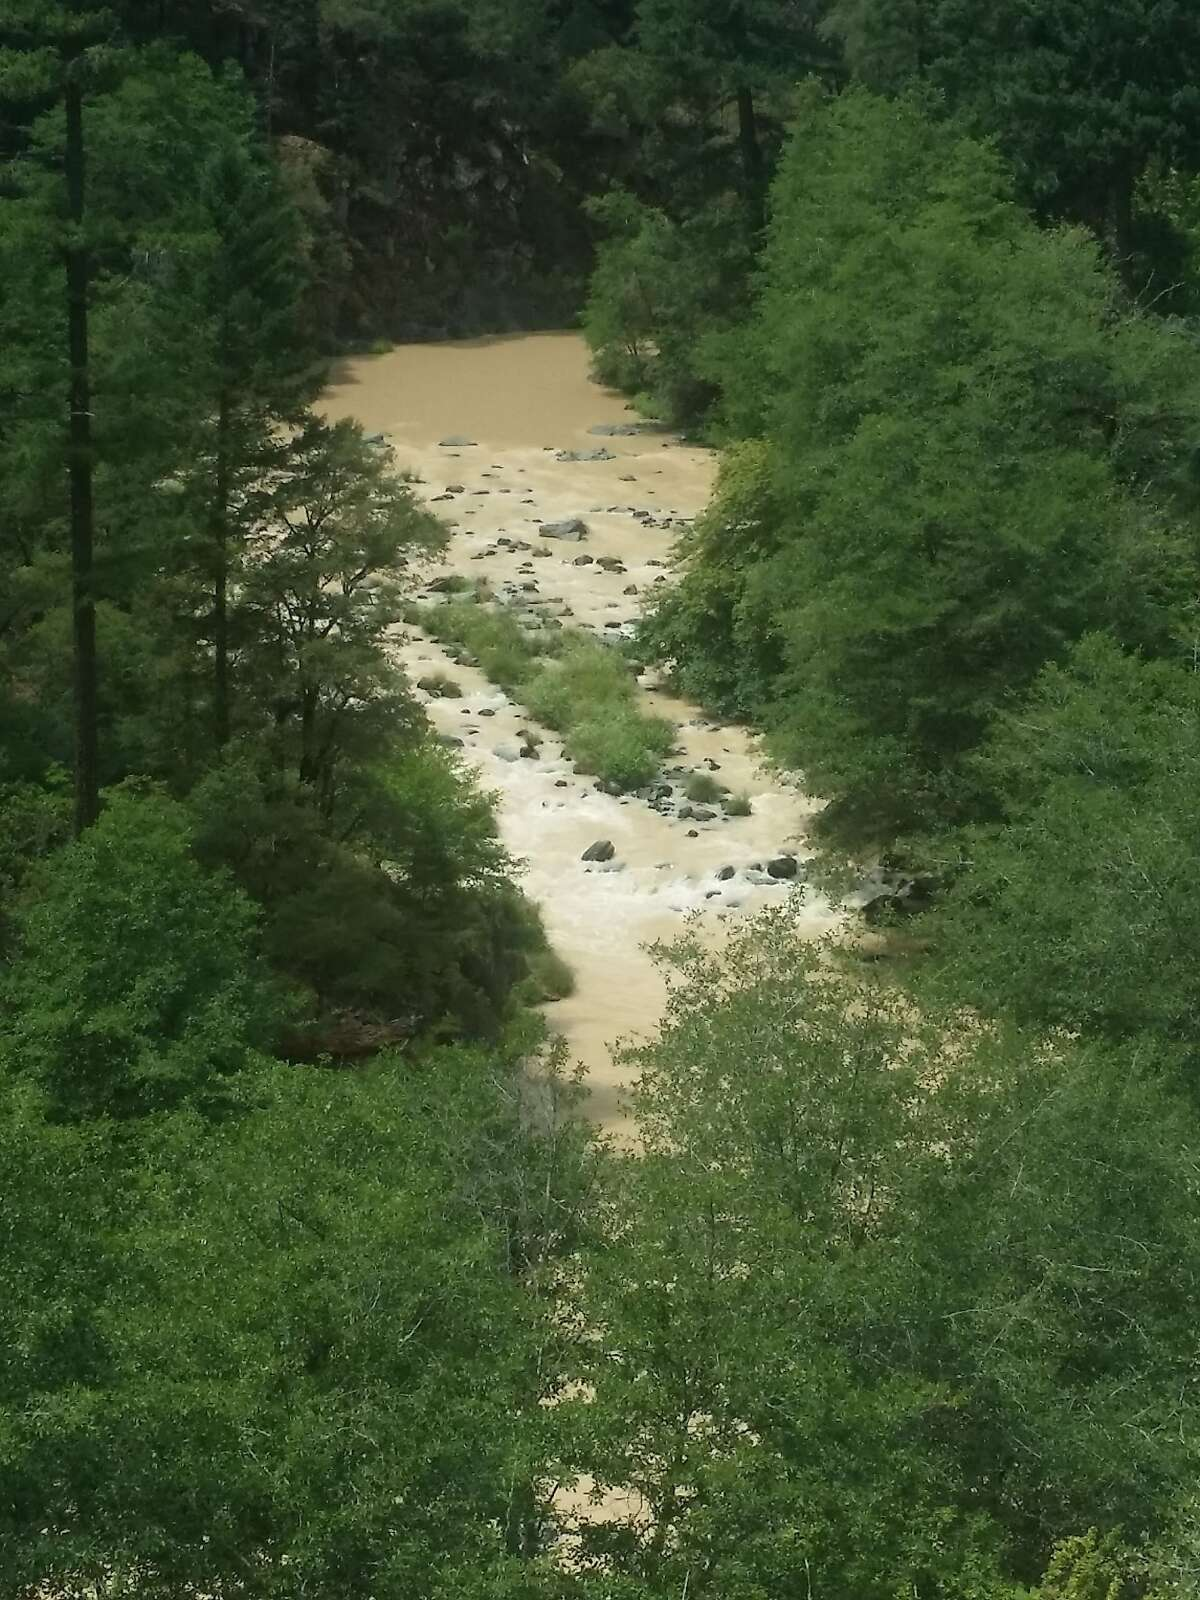 The McCloud River has turned into a churning river of mud because of melt from Konwakiton Glacier on Mount Shasta.